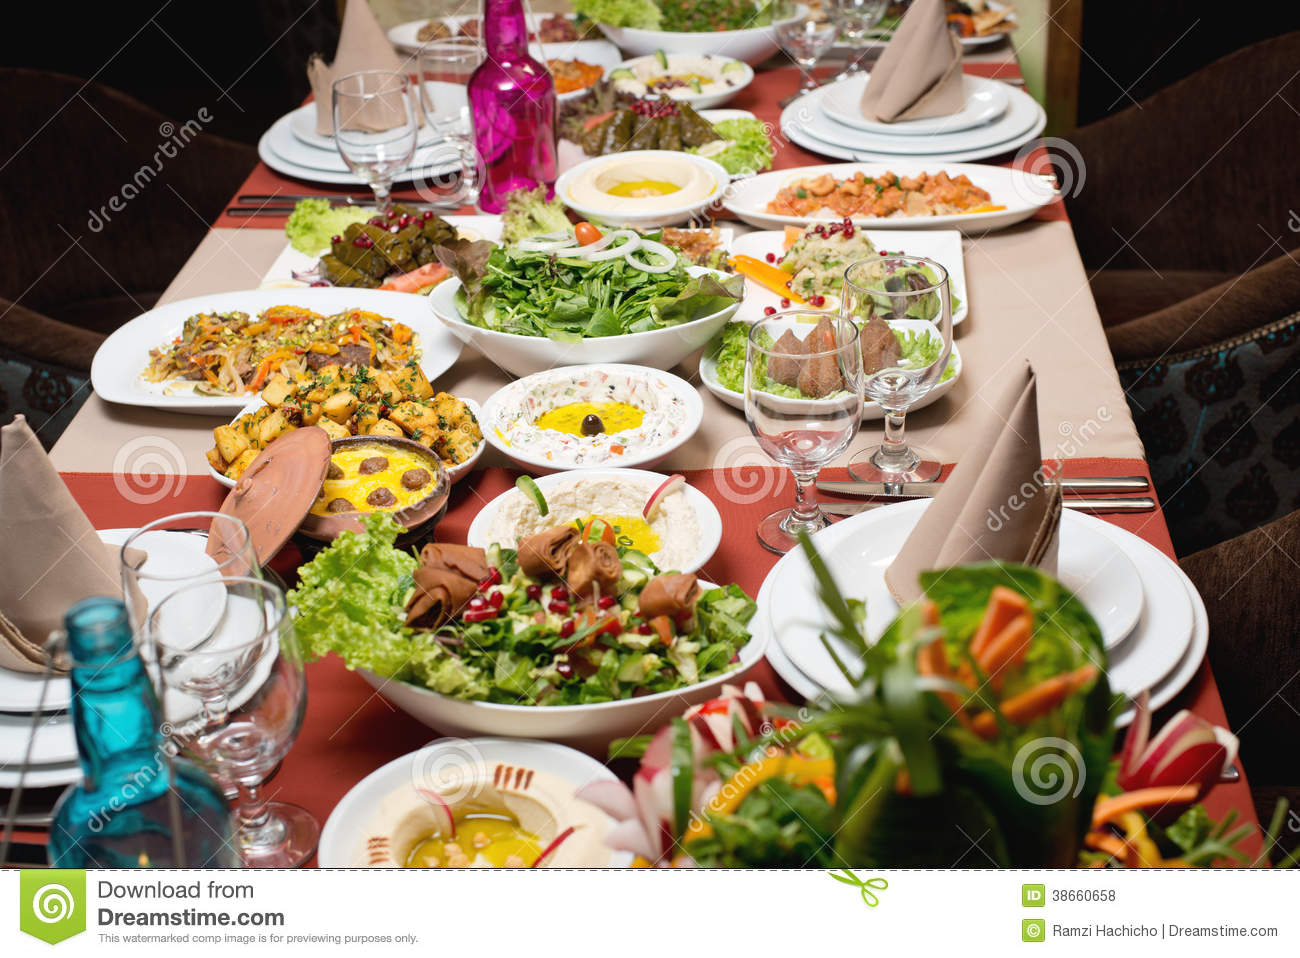 Table With Various Arabic Food Served Royalty Free Stock